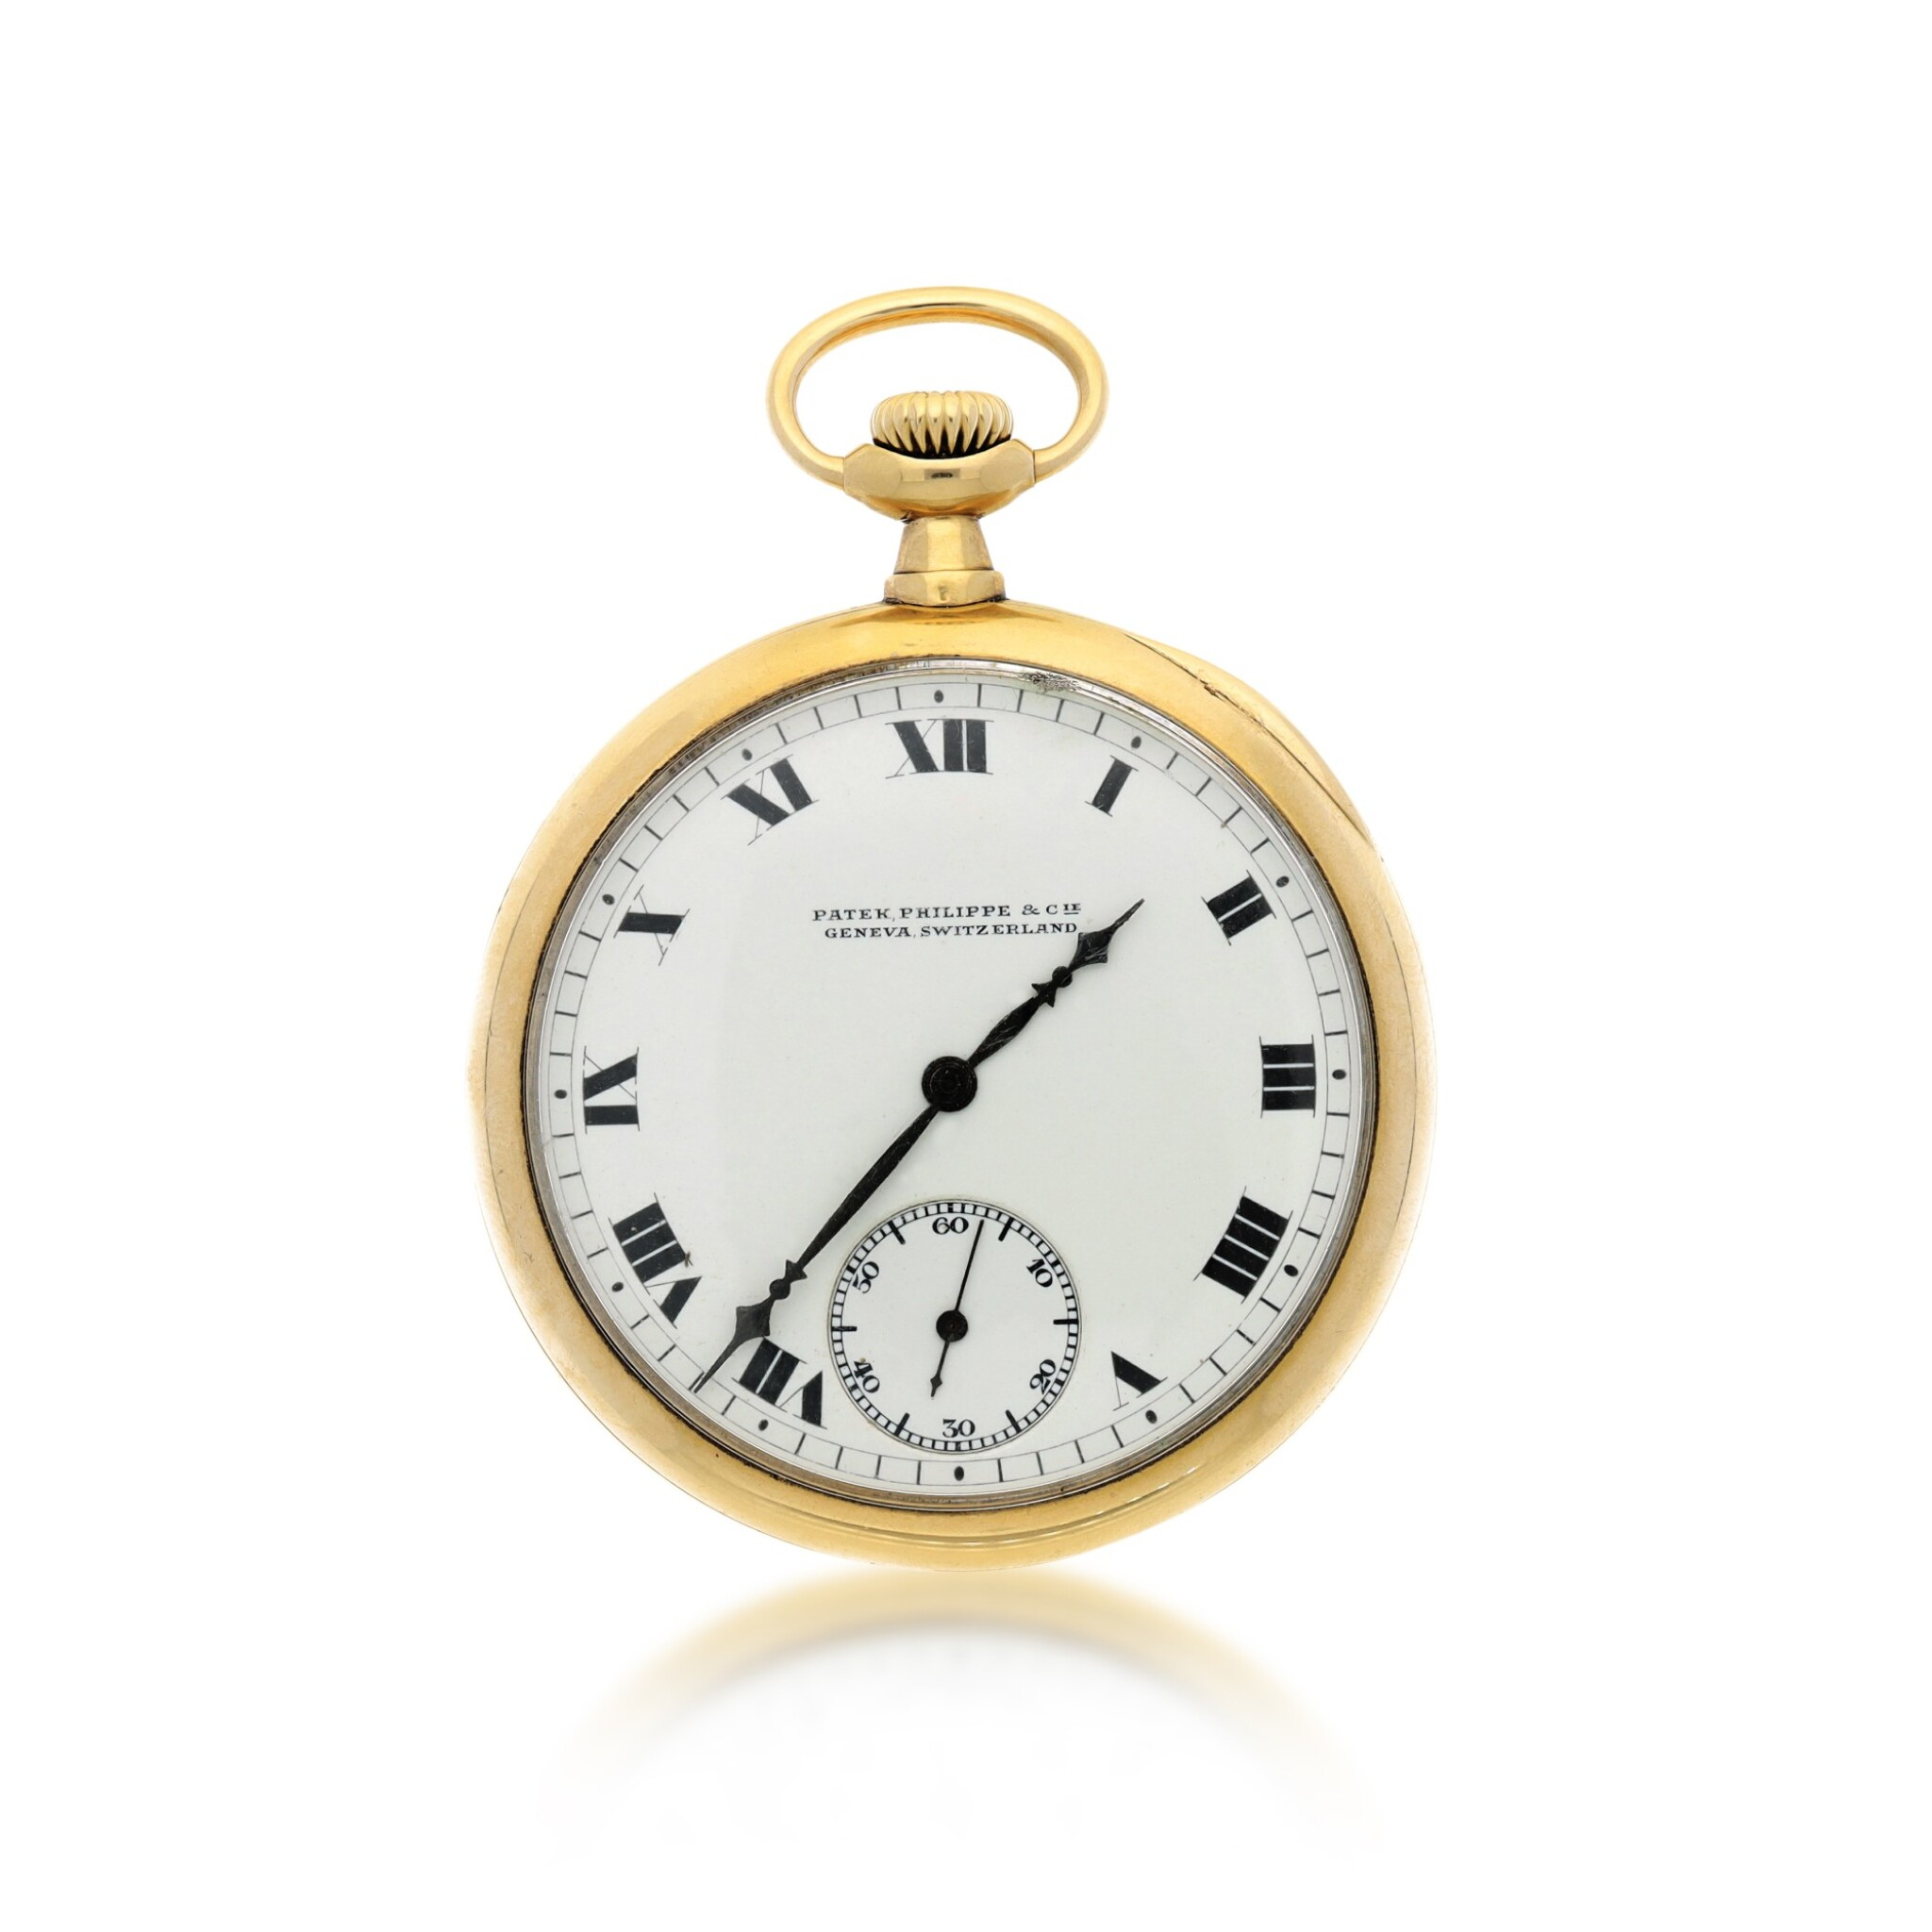 View full screen - View 1 of Lot 38. PATEK PHILIPPE | A YELLOW GOLD OPEN FACED WATCH, MADE IN 1914.